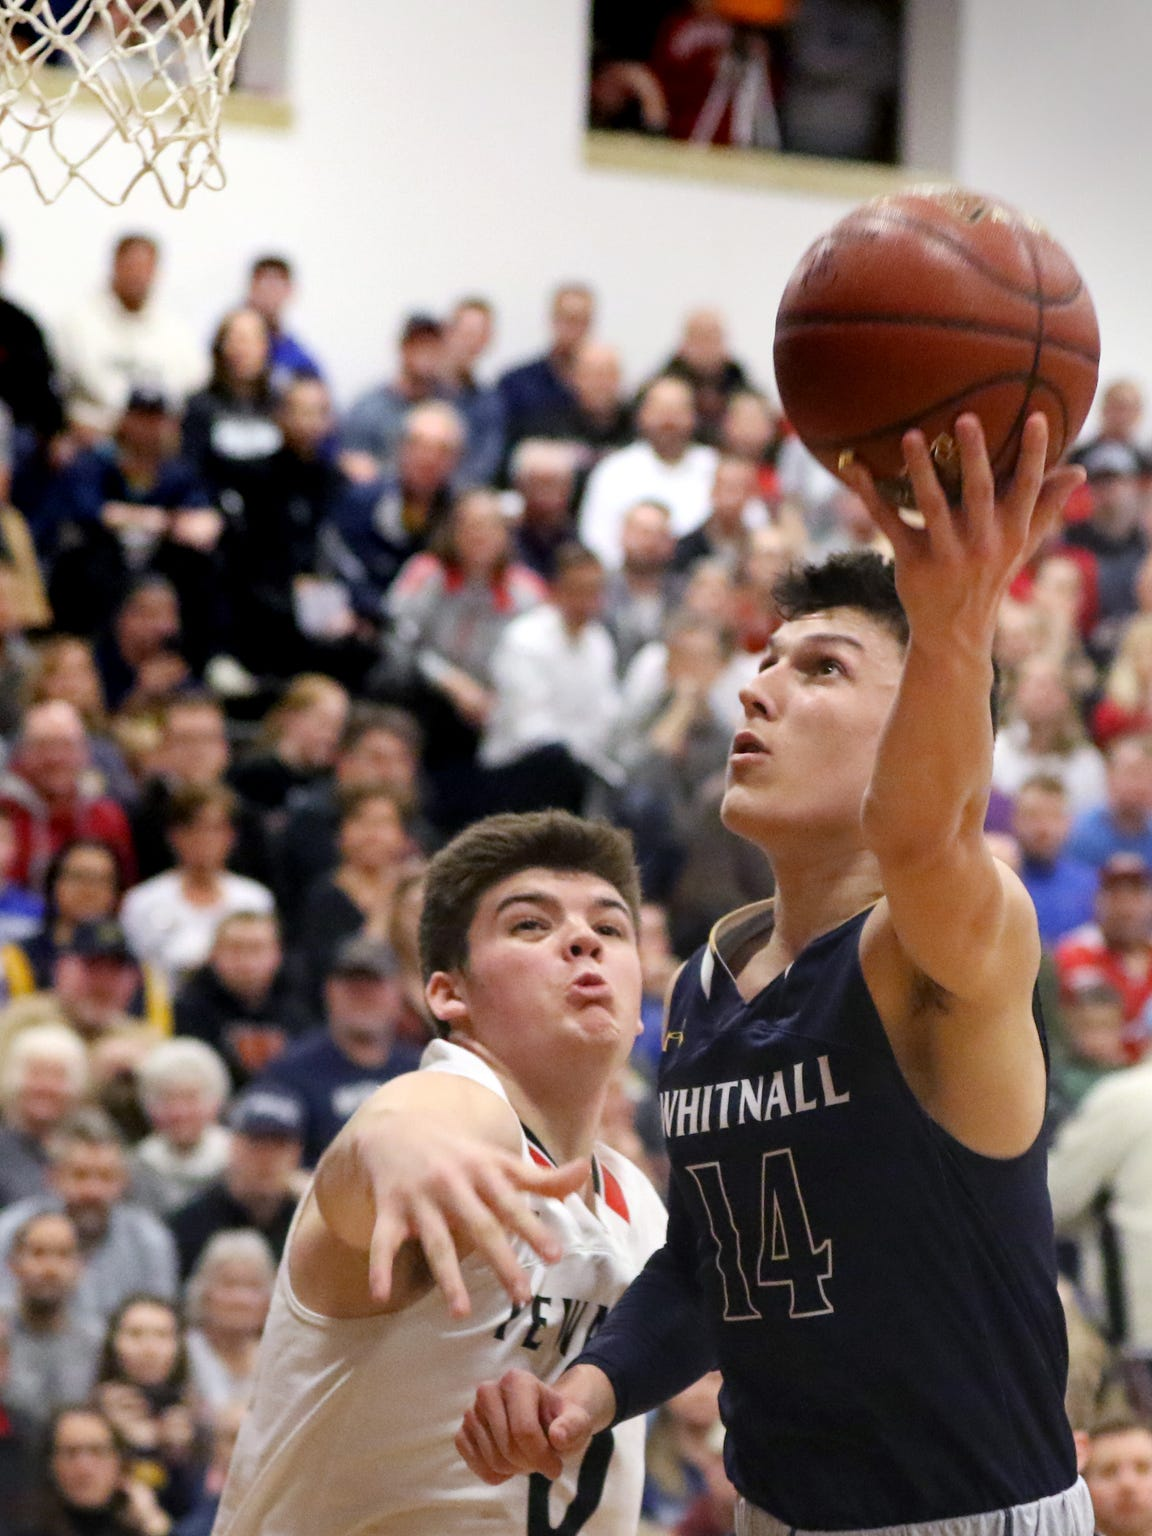 Whitnall's Tyler Herro fires for two points against